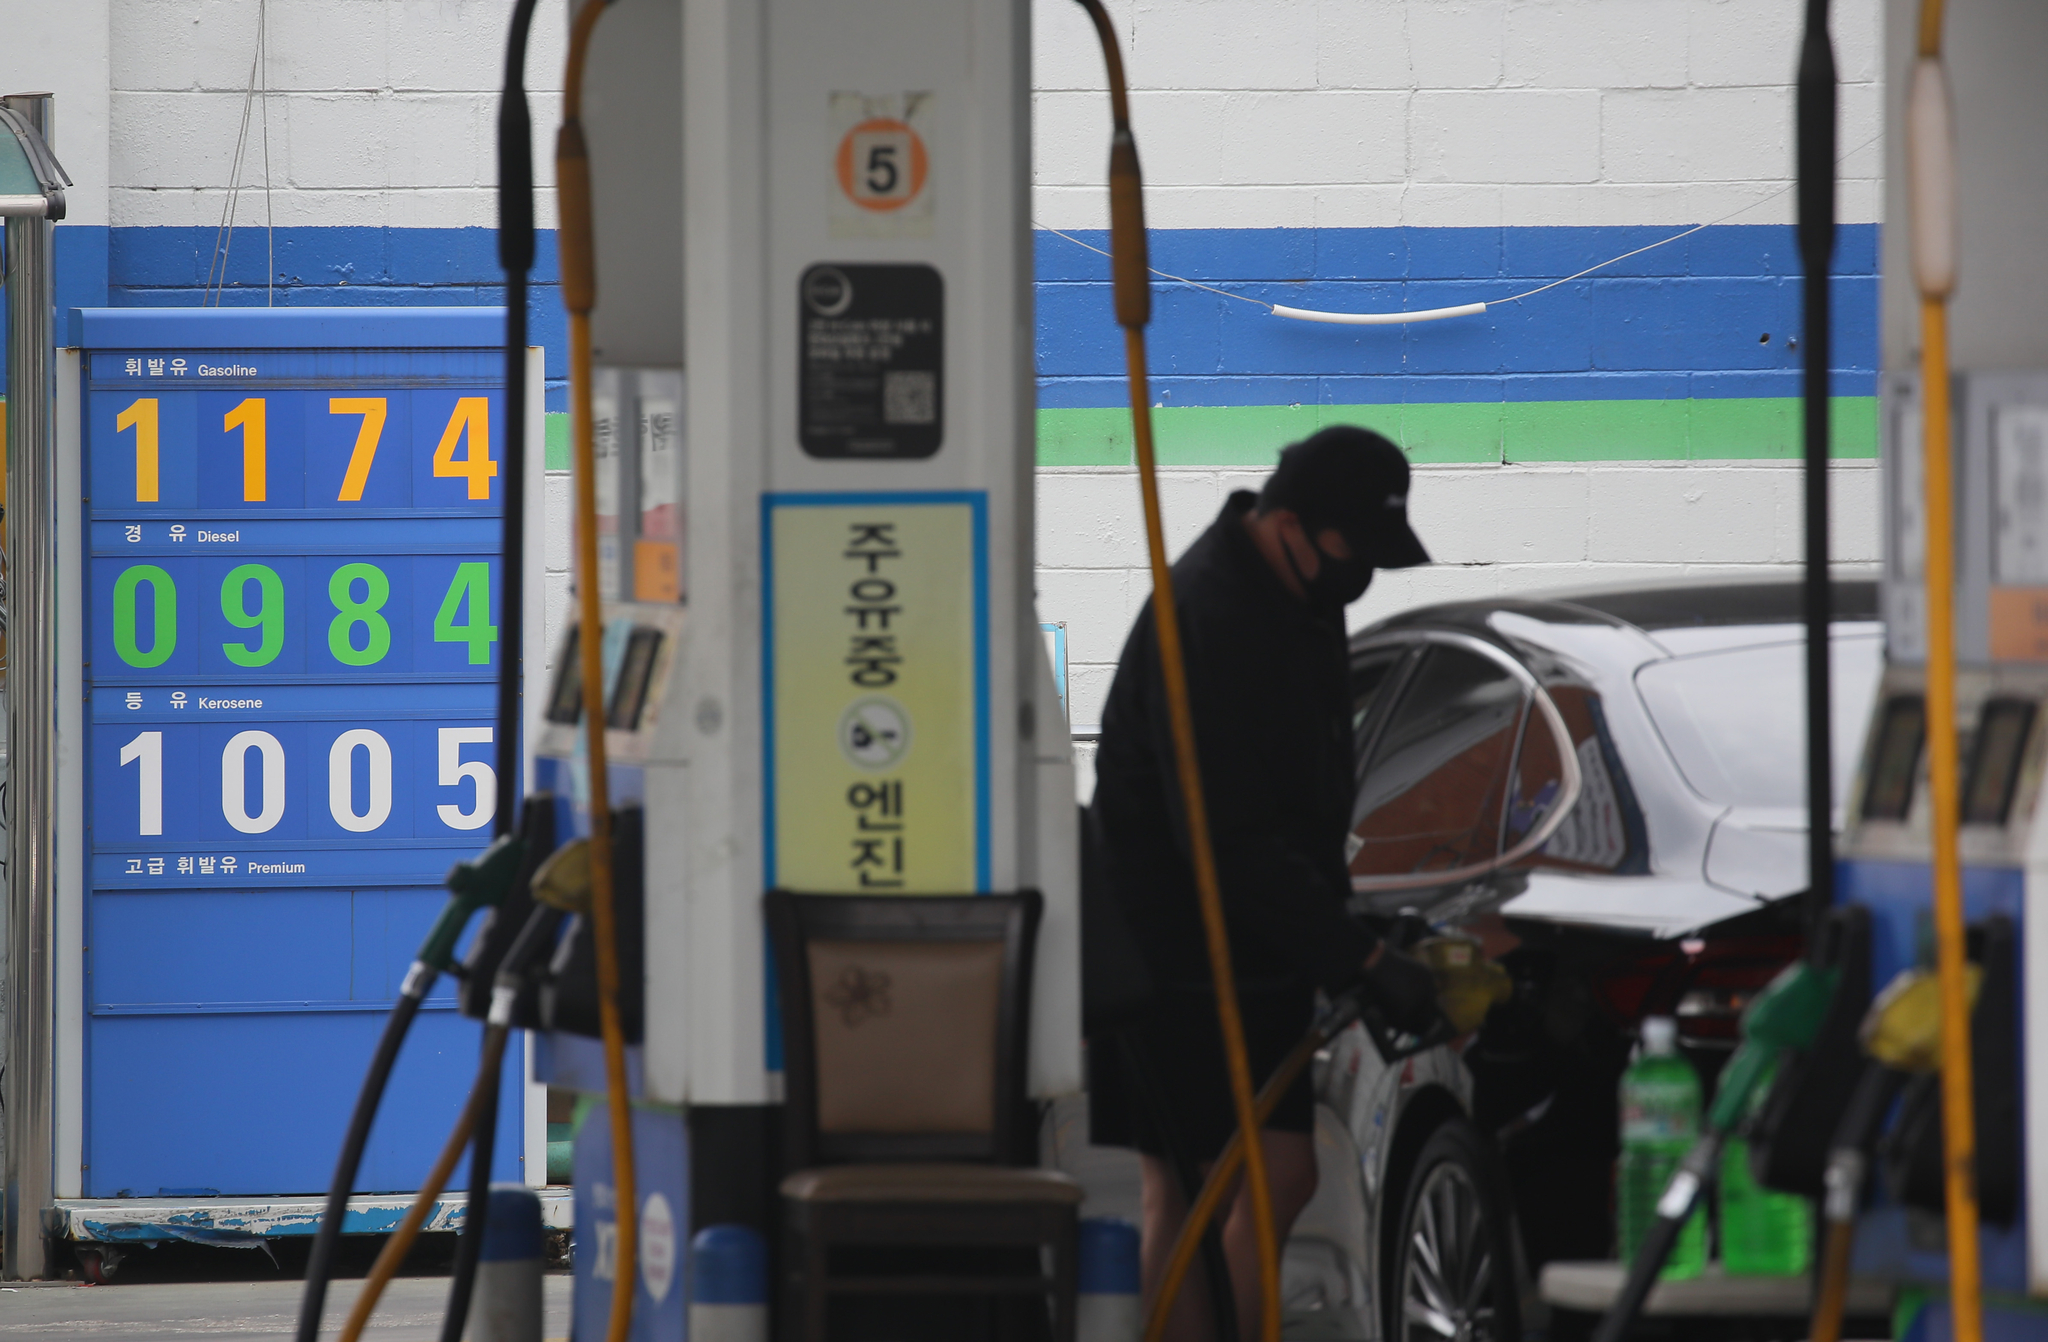 A gas station in Yangcheon District, western Seoul, advertises the price of gasoline at 1,174 won ($0.96) per liter on Tuesday. The weekly price of gasoline in Korea is expected to keep falling. [YONHAP]